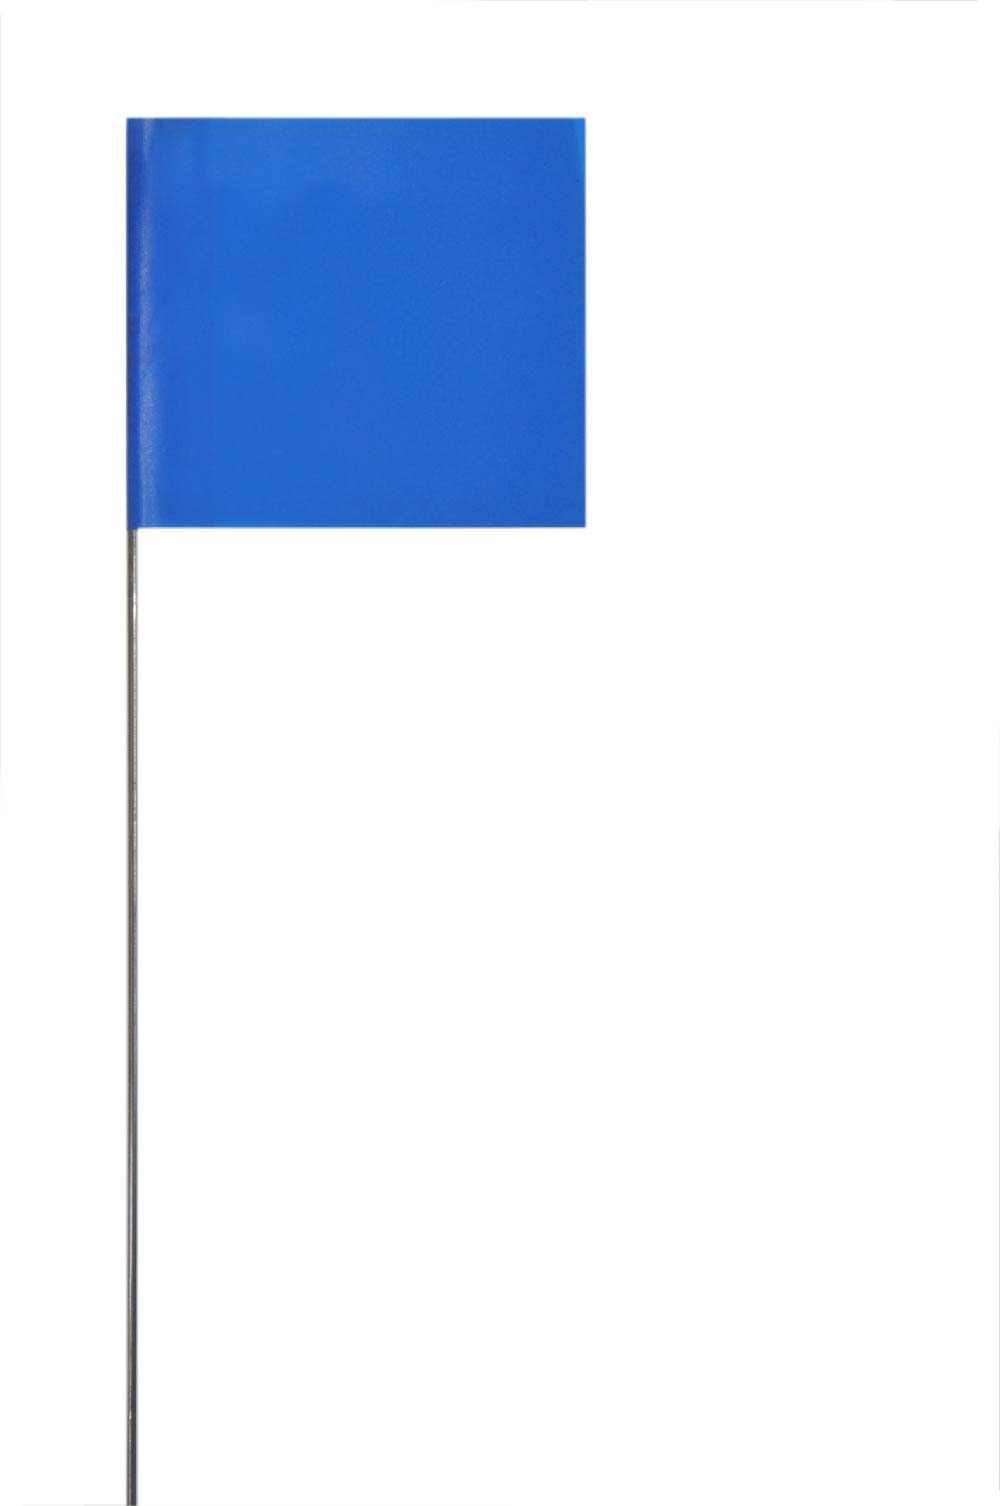 Marking Flag Blue - Pack of 1000